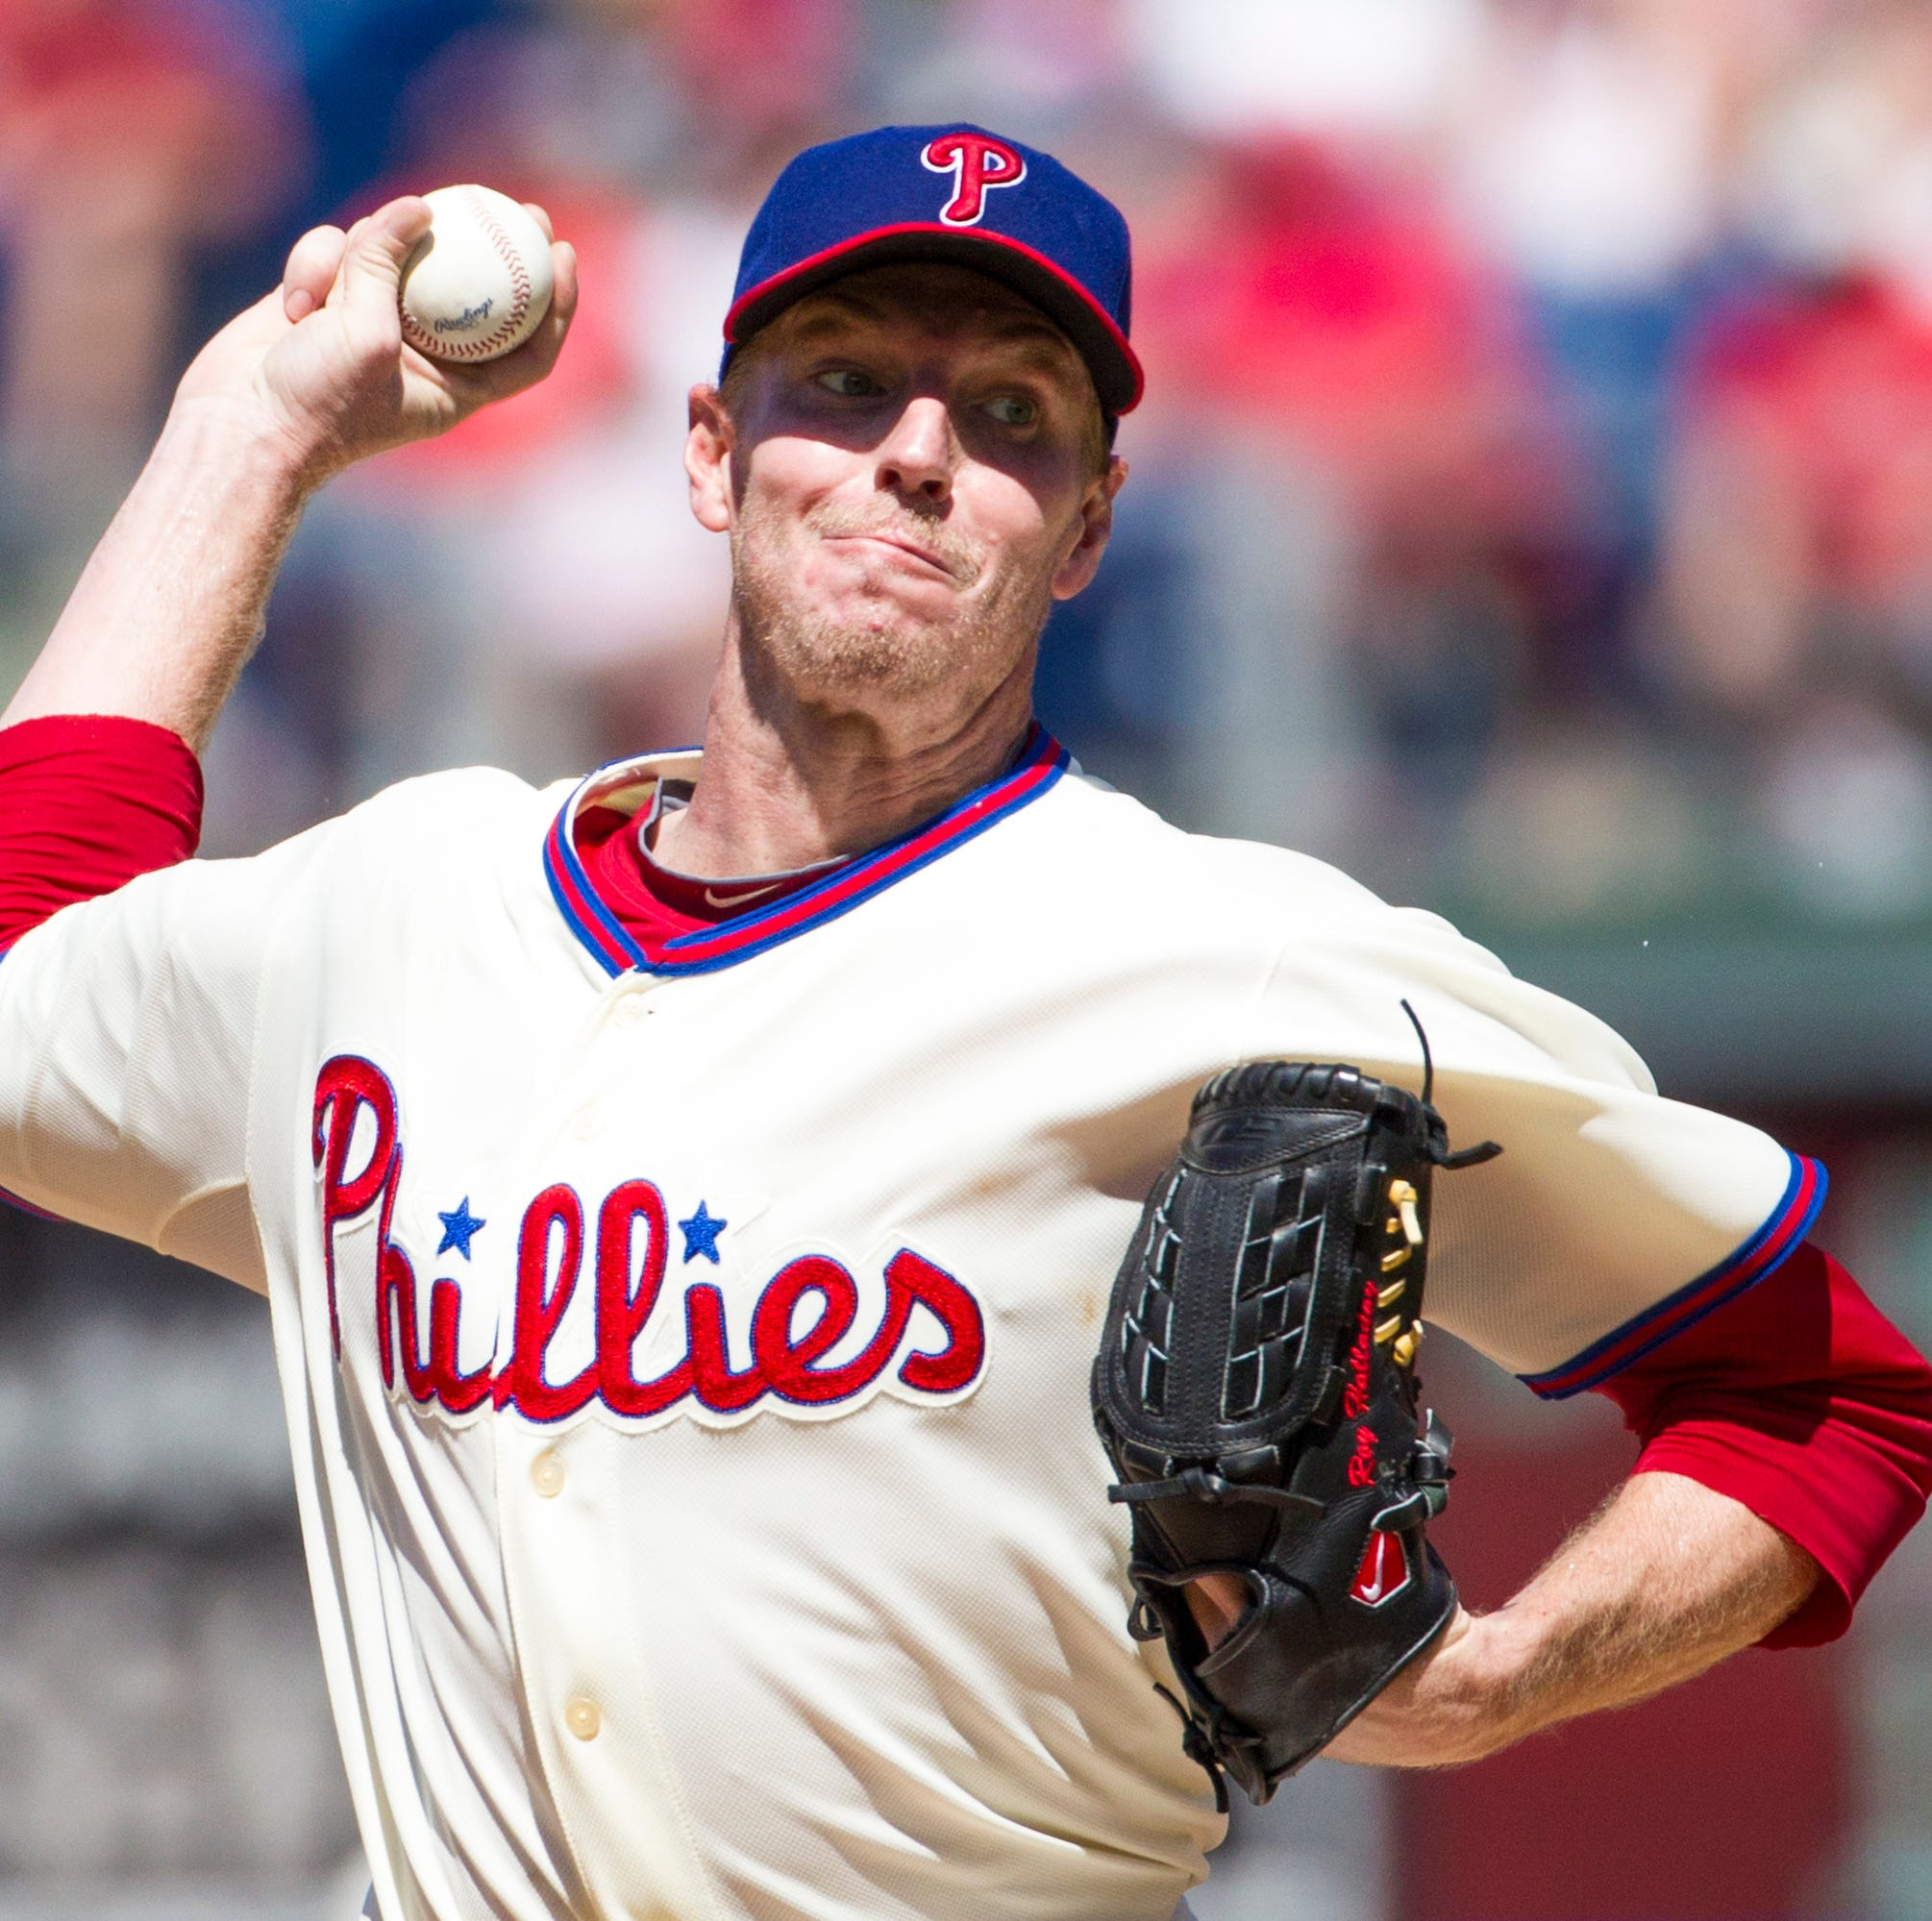 No hat logo for Roy Halladay's Hall of Fame plaque